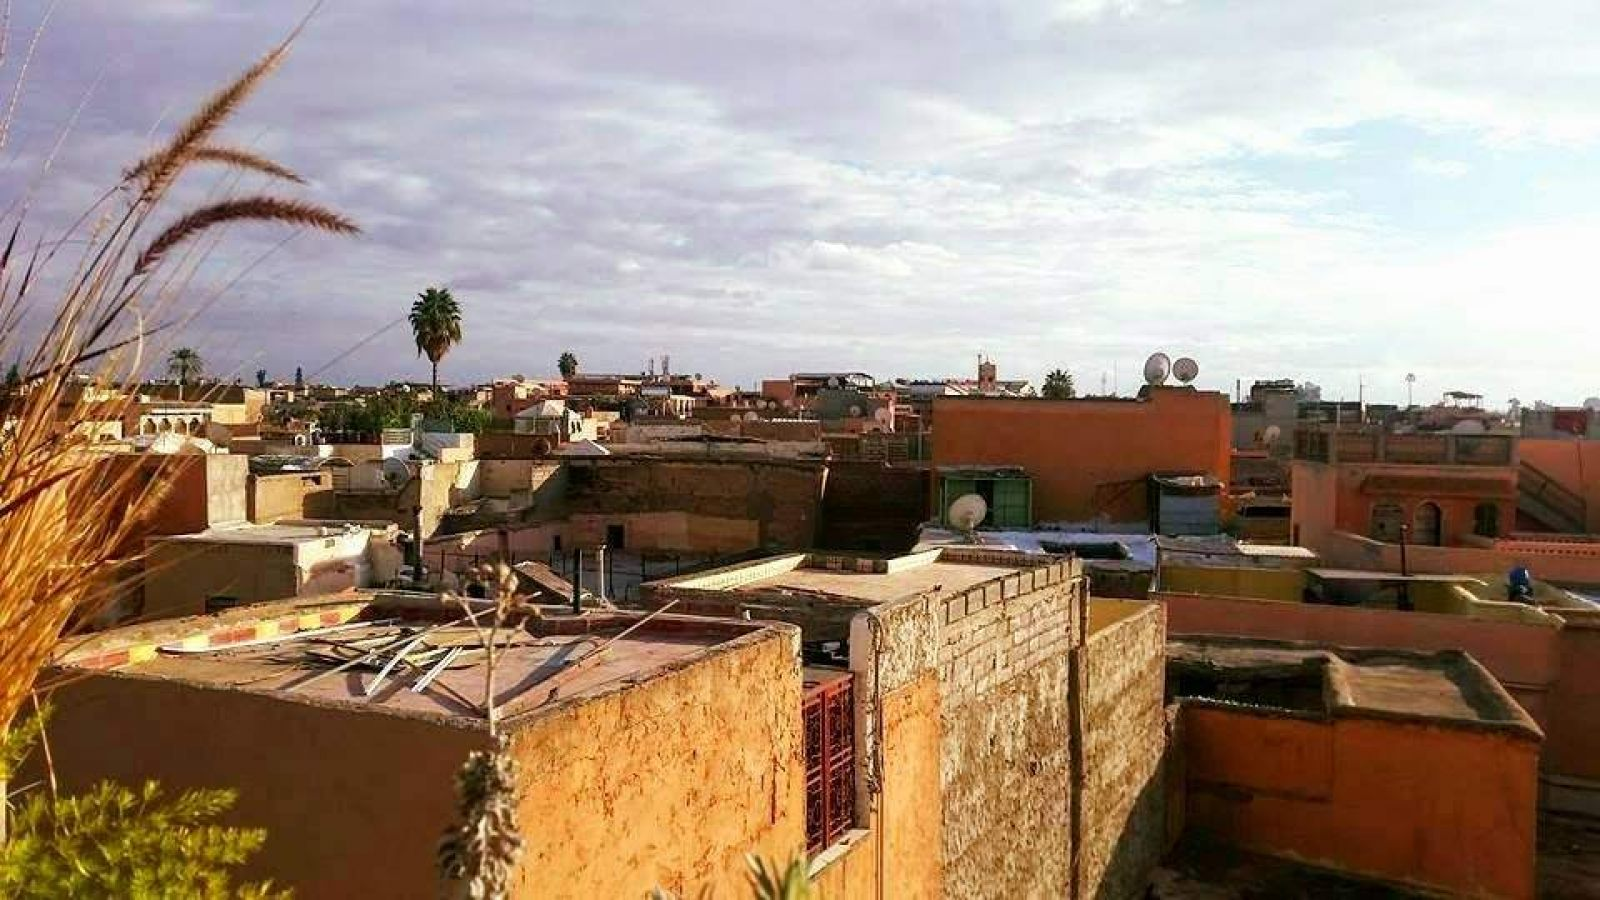 Hibiscus & Nomada : Marrakech - View over Marrakech